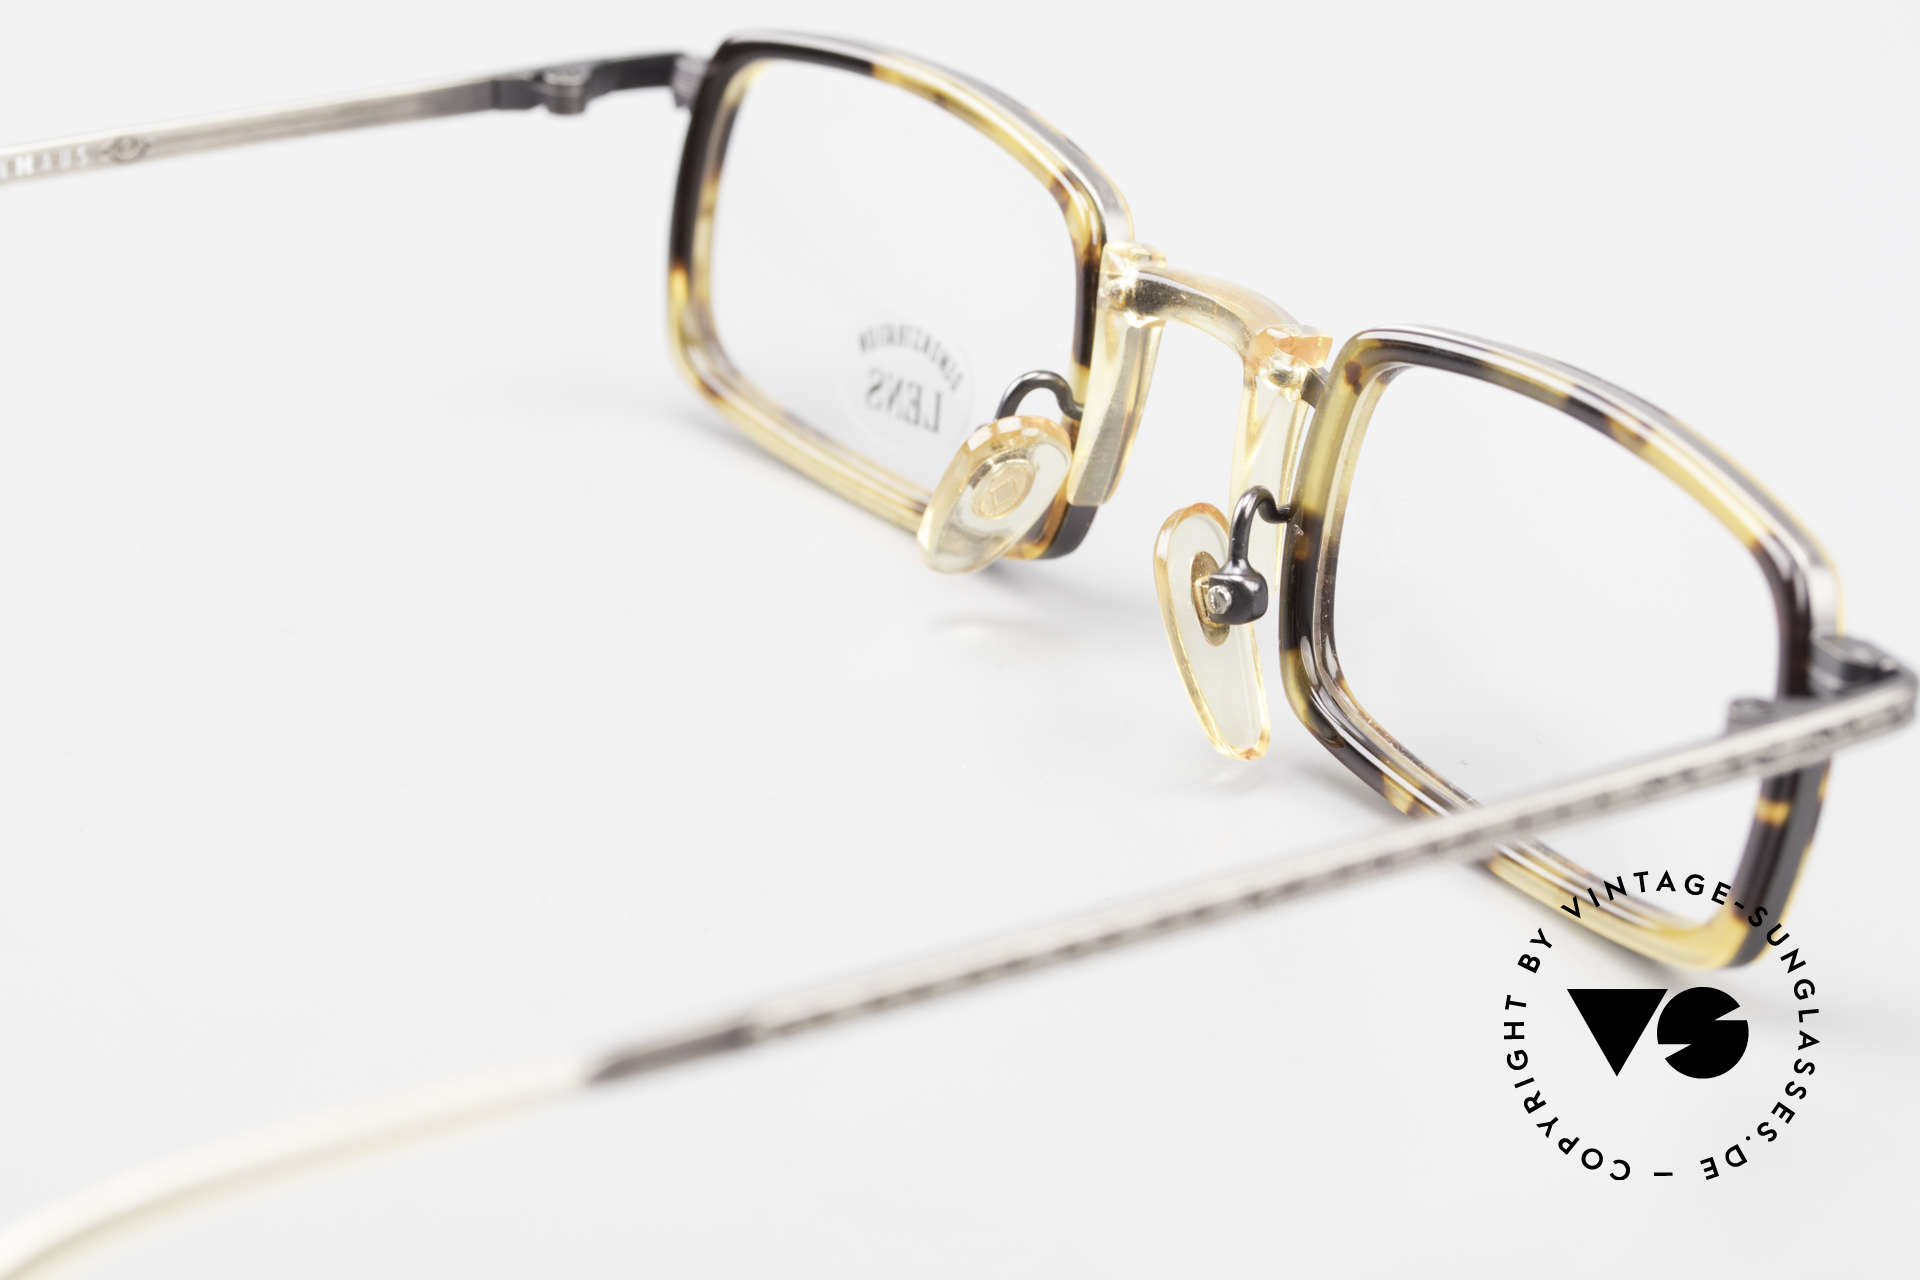 Freudenhaus Jedi Square 90's Designer Frame, NO RETRO fashion, but an old Original from the 90's, Made for Men and Women